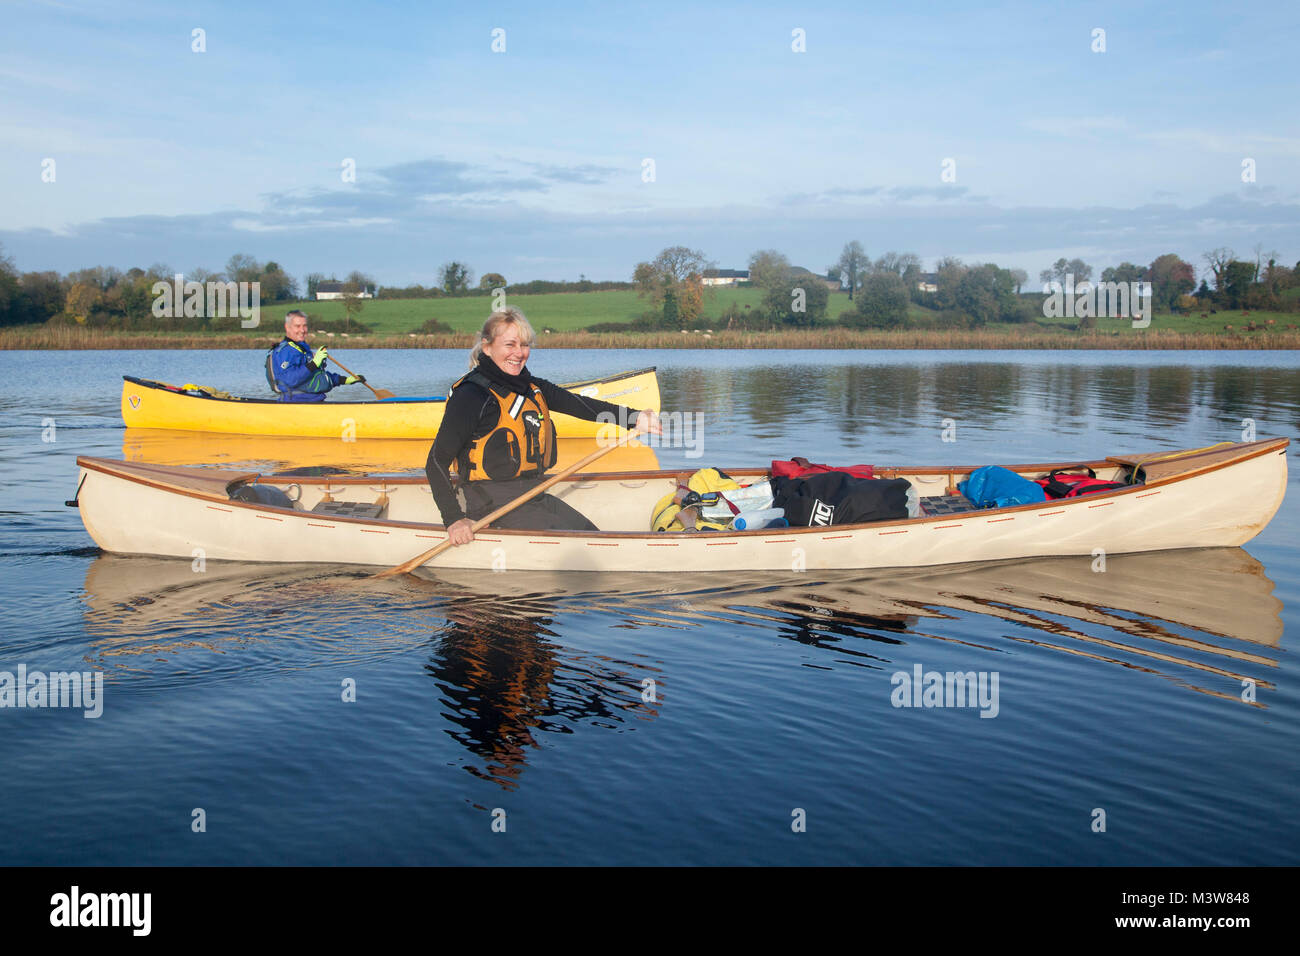 Canoeing near Culky, Upper Lough Erne, County Fermanagh, Northern Ireland. - Stock Image